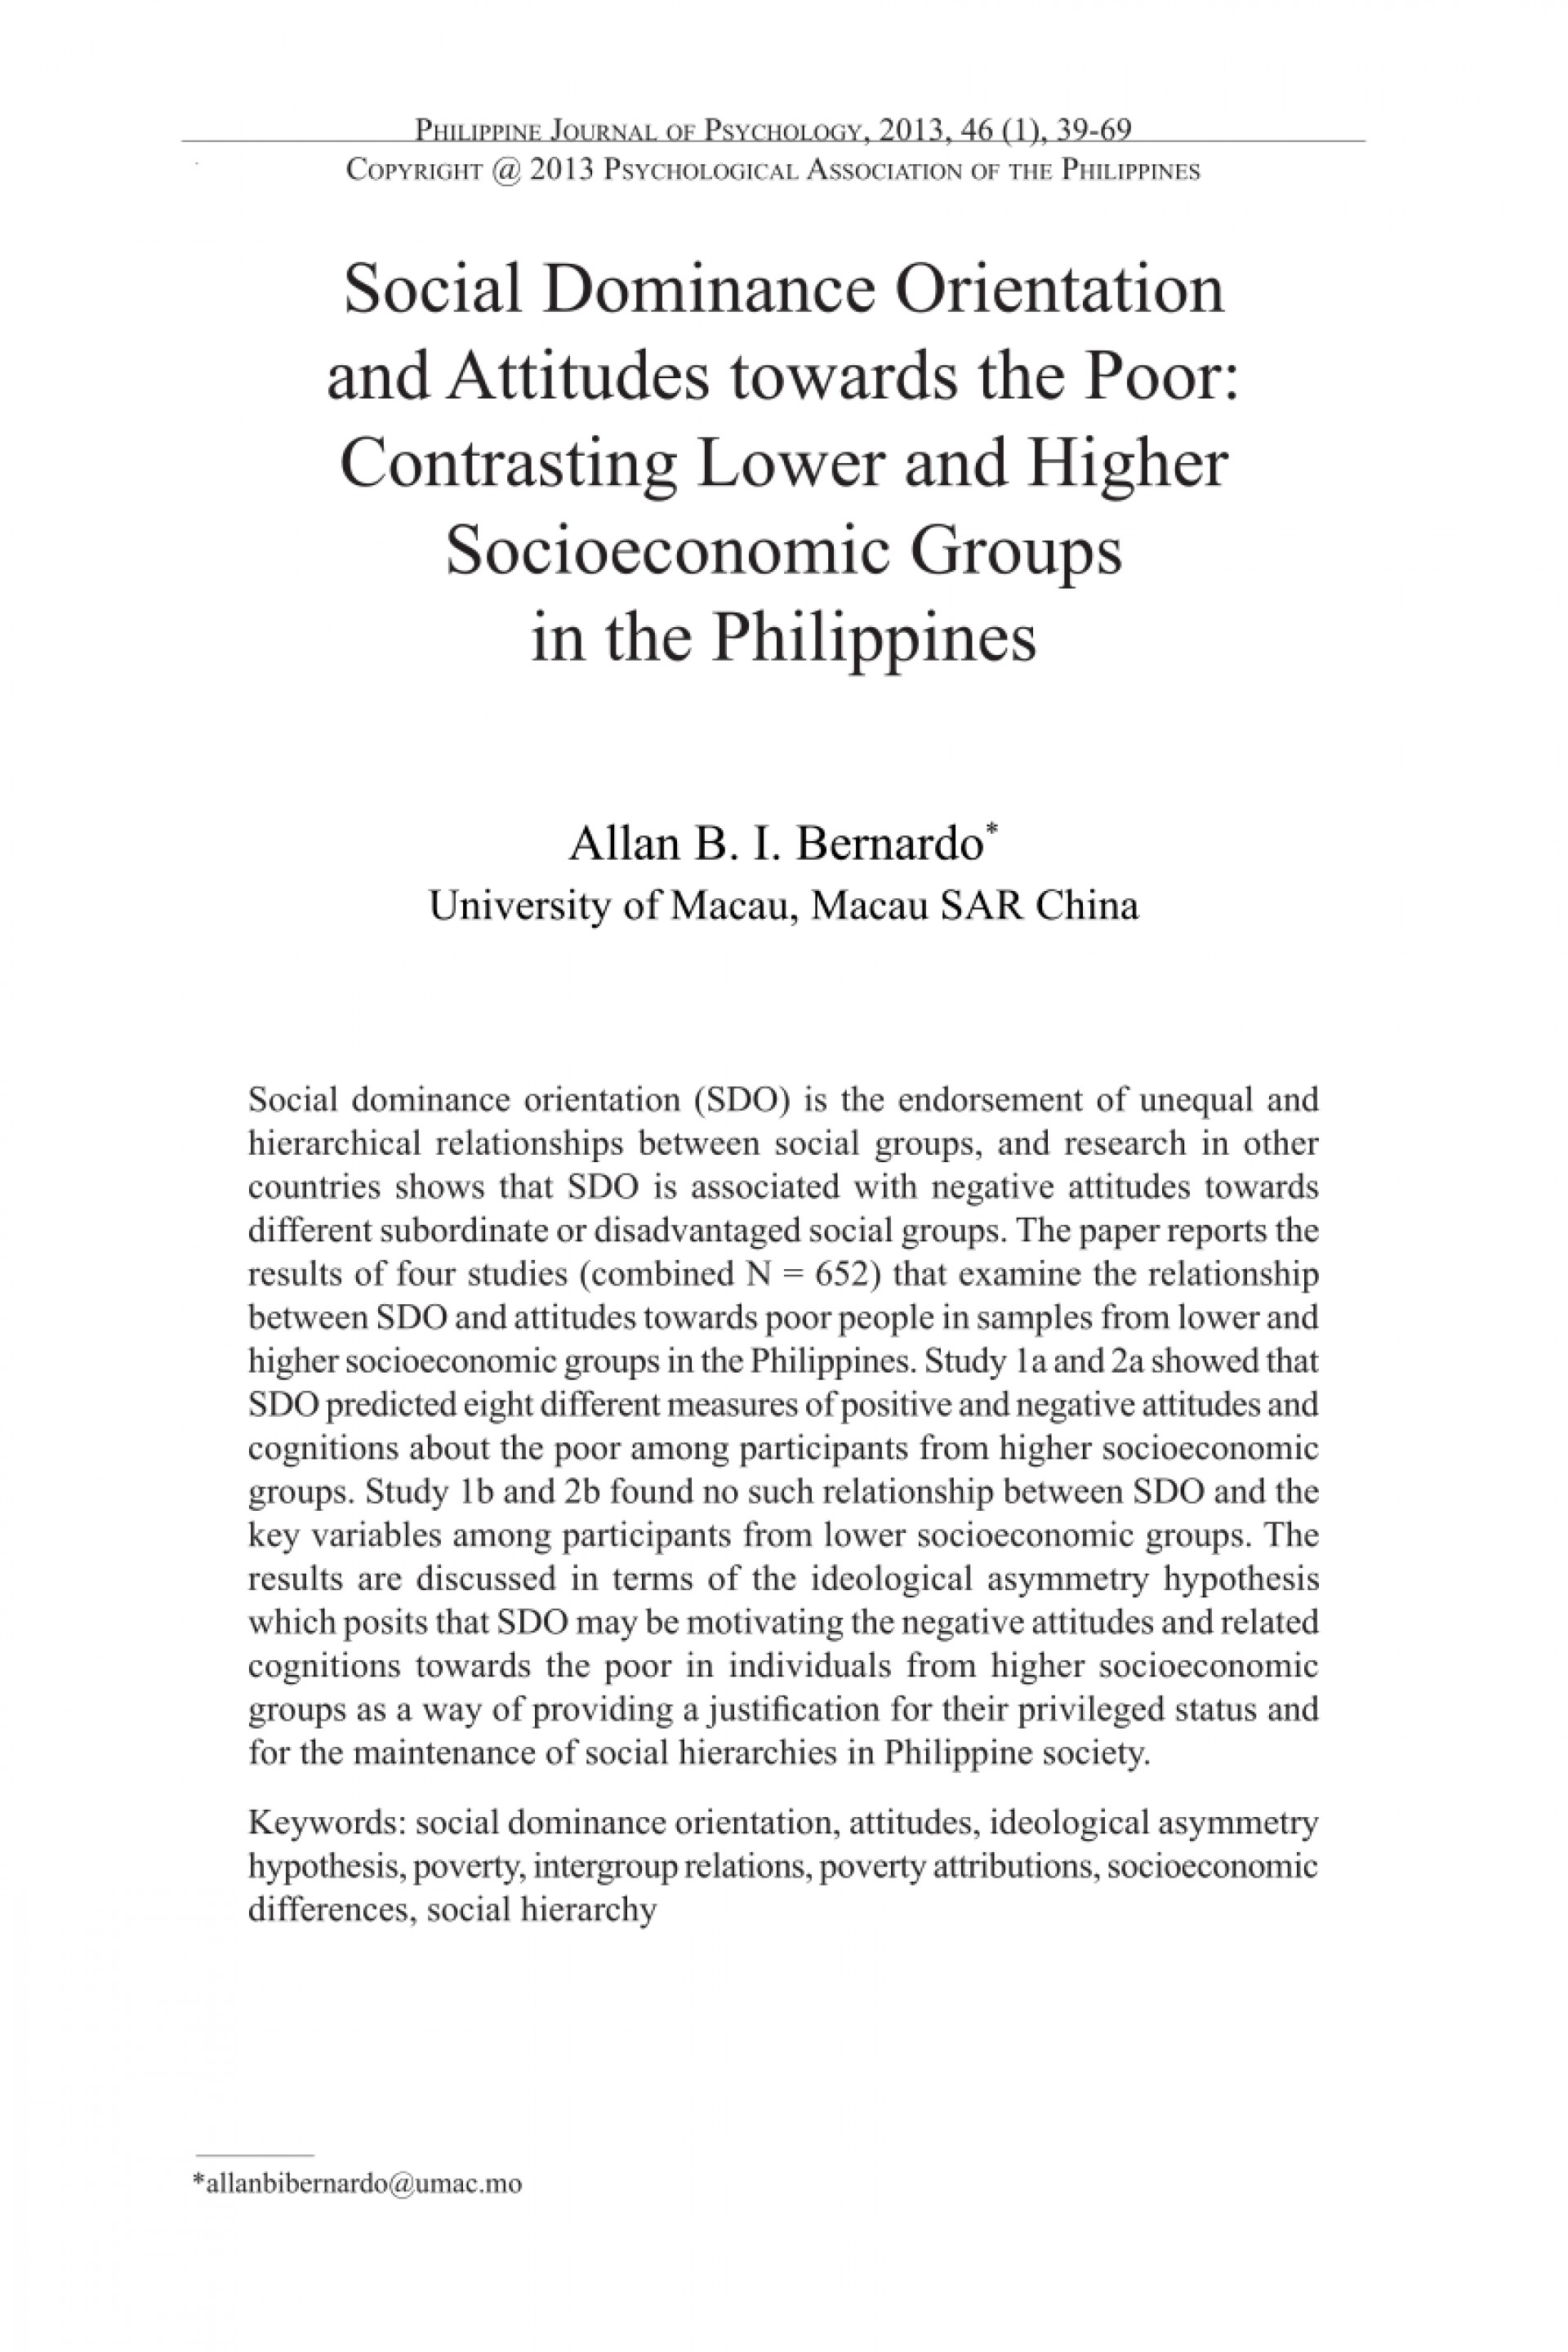 004 Poverty In The Philippines Research Paper Pdf Impressive 1920